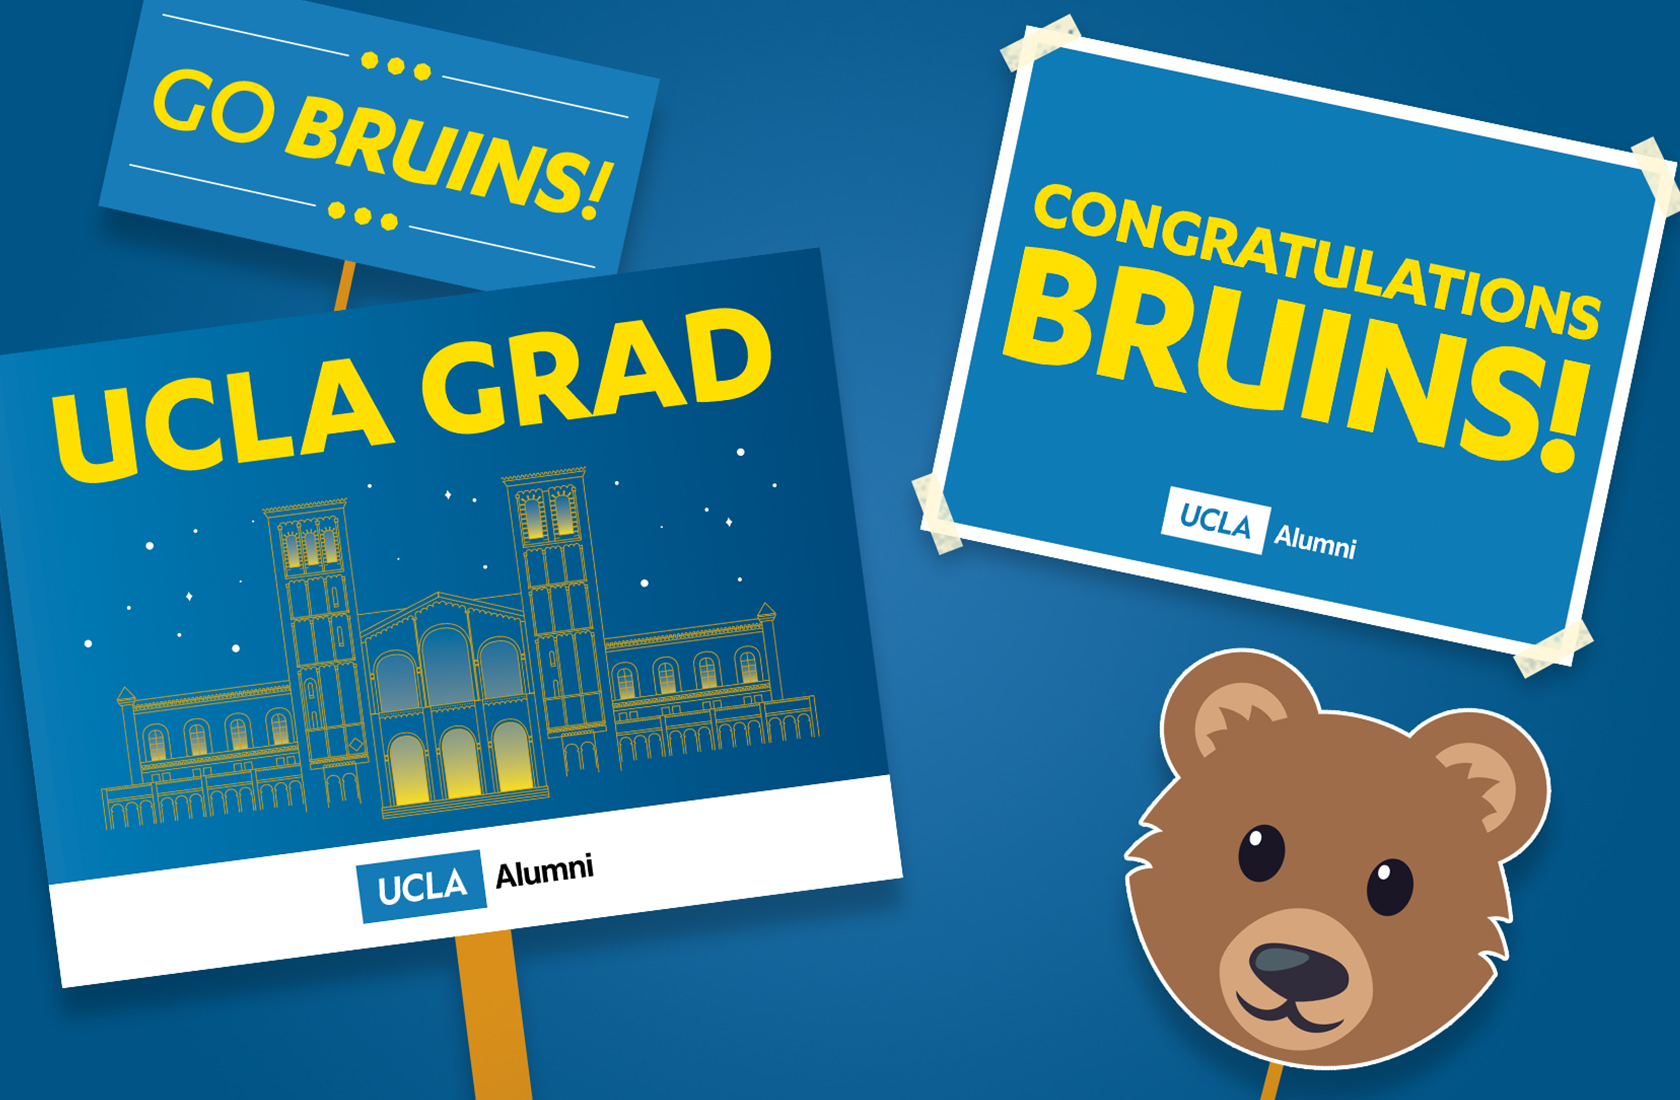 Printable yard signage to celebrate graduation Bruins